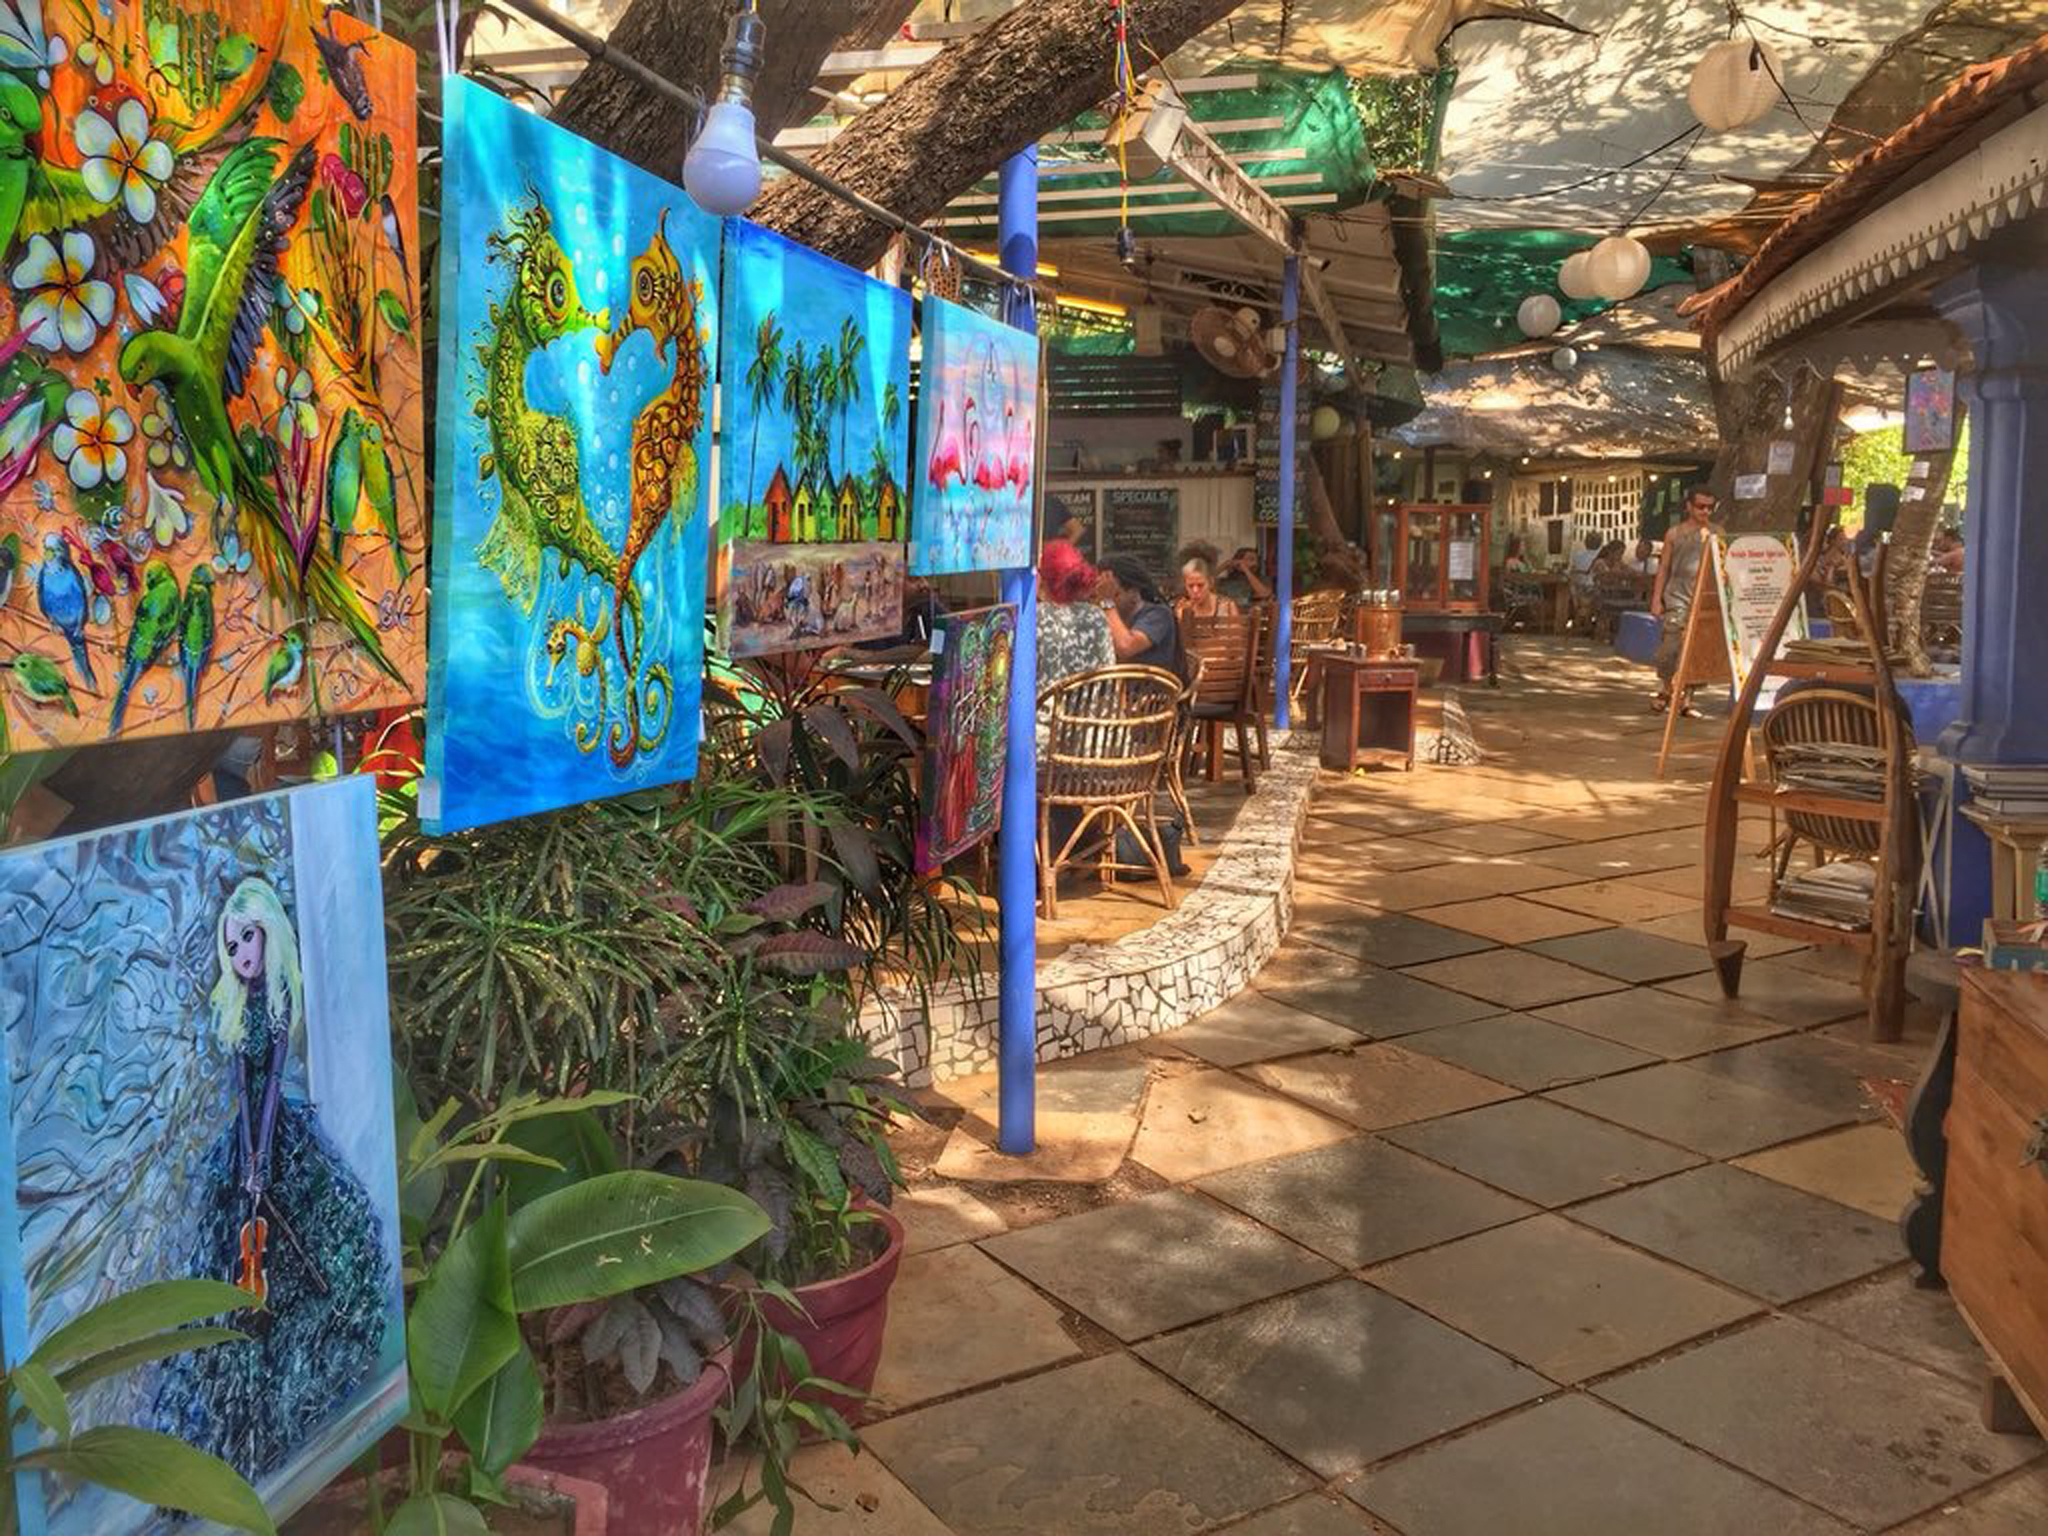 Artjuna Garden Cafe and Lifestyle Shop, things to do in Goa, India